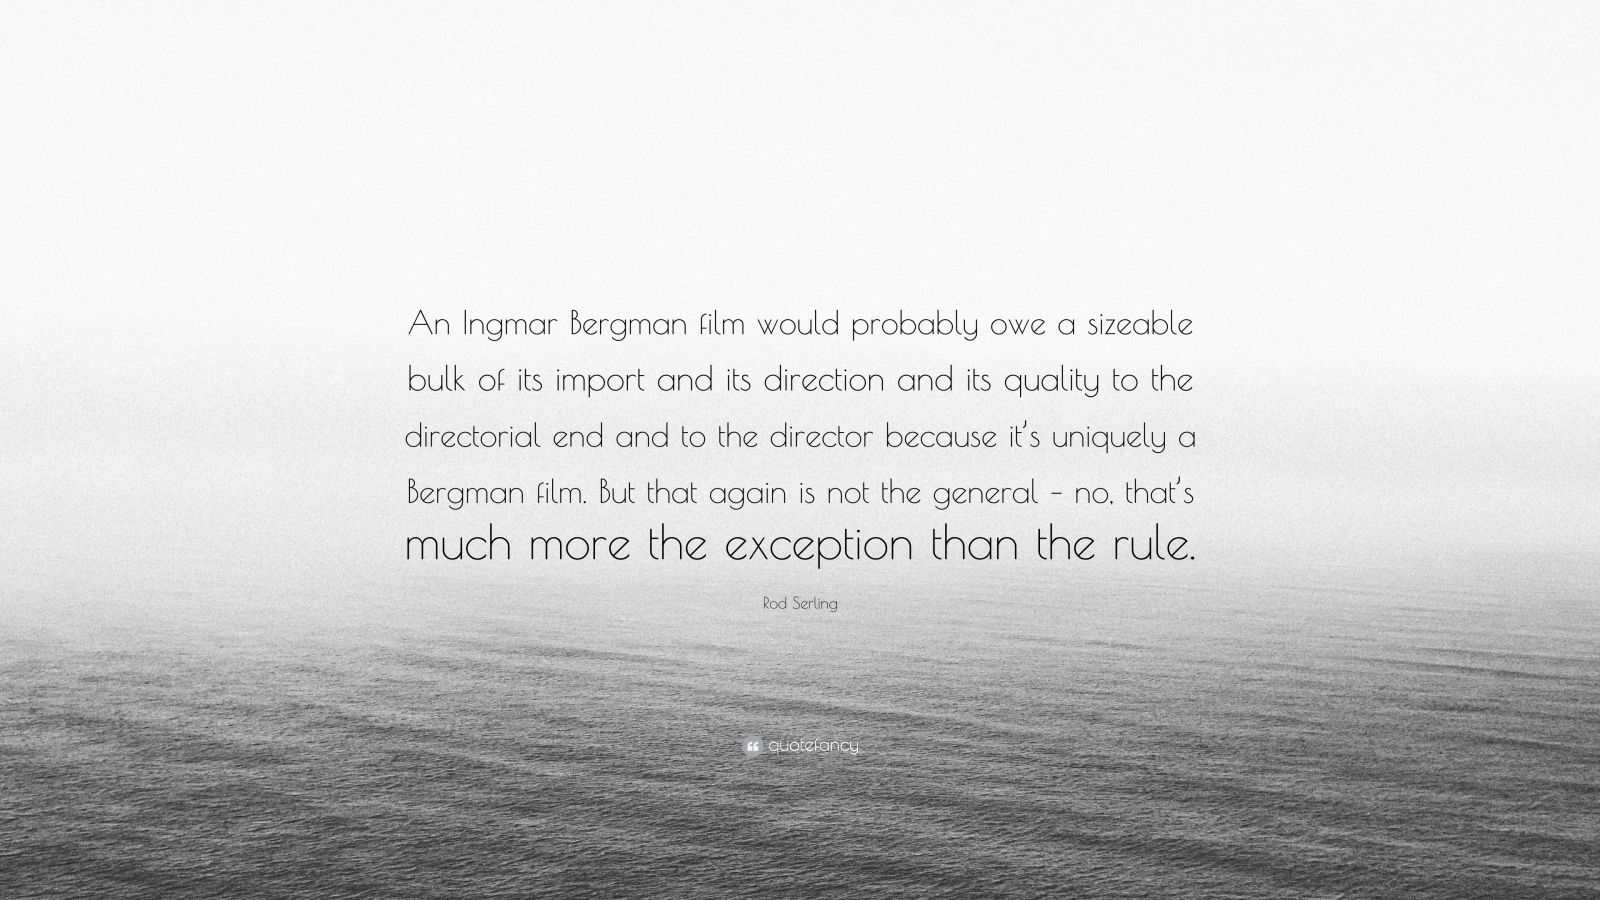 """Rod Serling Quote: """"An Ingmar Bergman film would probably owe a sizeable bulk of its import and its direction and its quality to the directorial end and to the director because it's uniquely a Bergman film. But that again is not the general – no, that's much more the exception than the rule."""""""